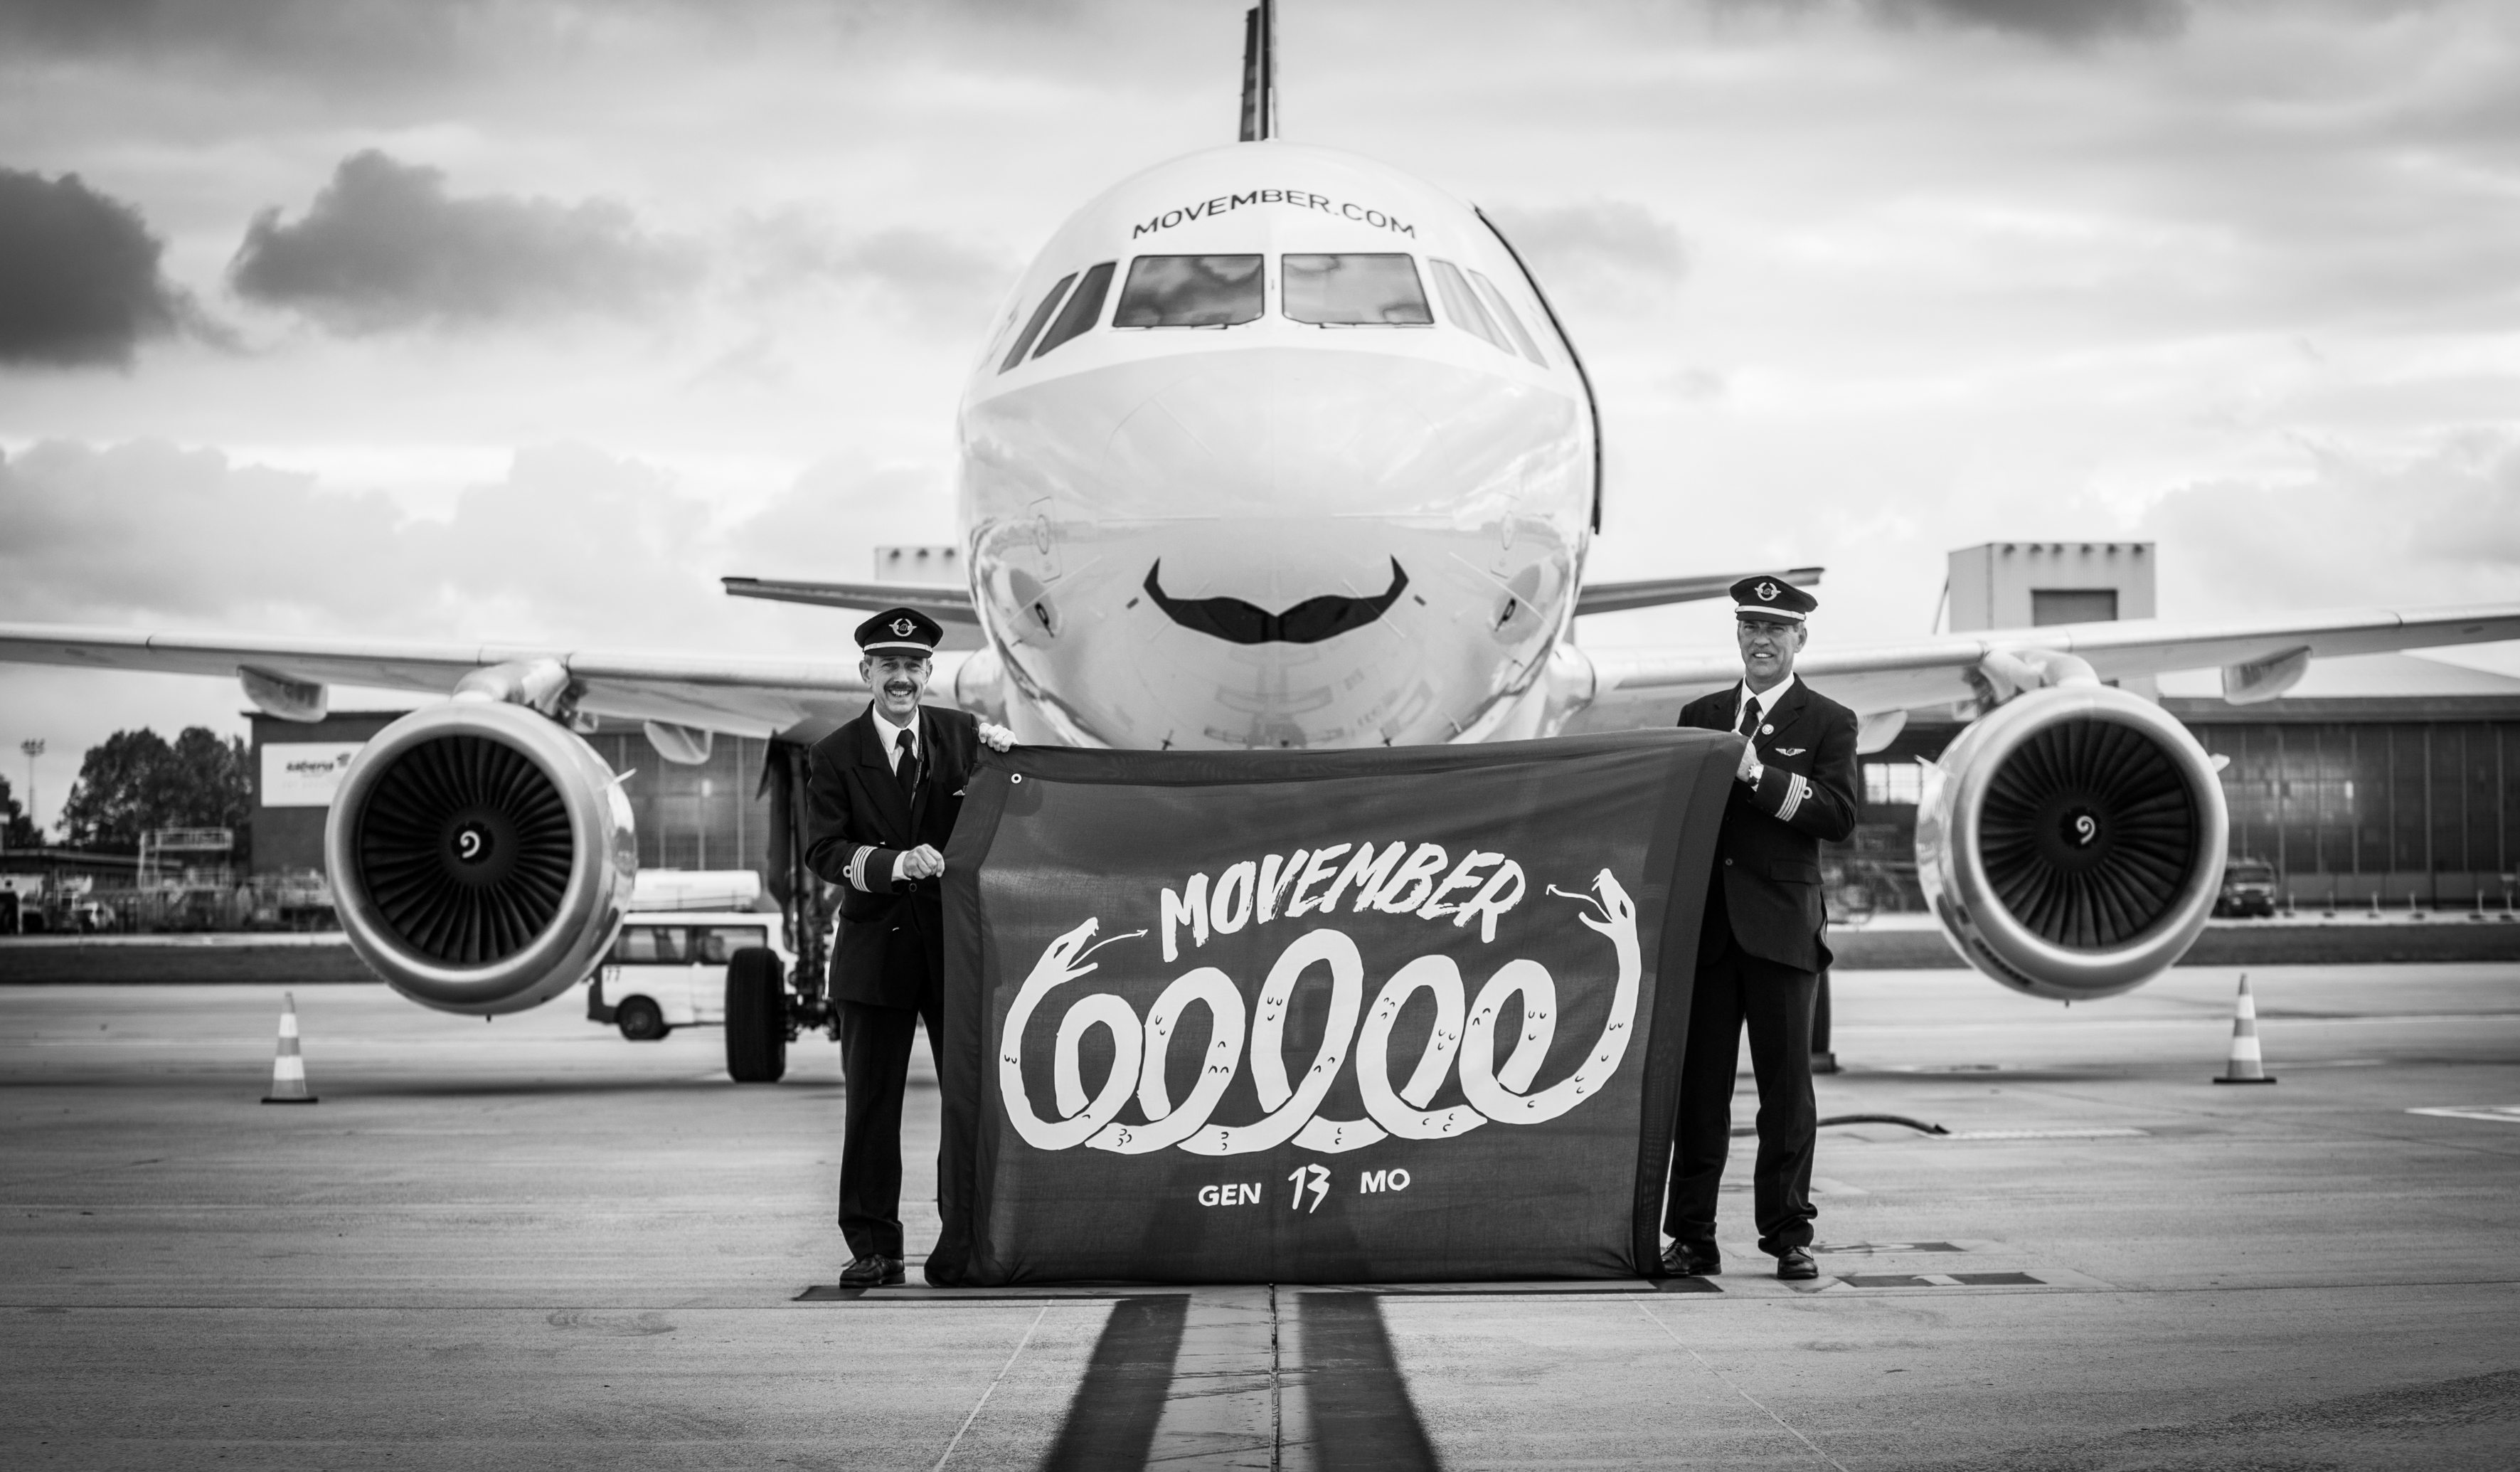 Brussels Airlines for Movember